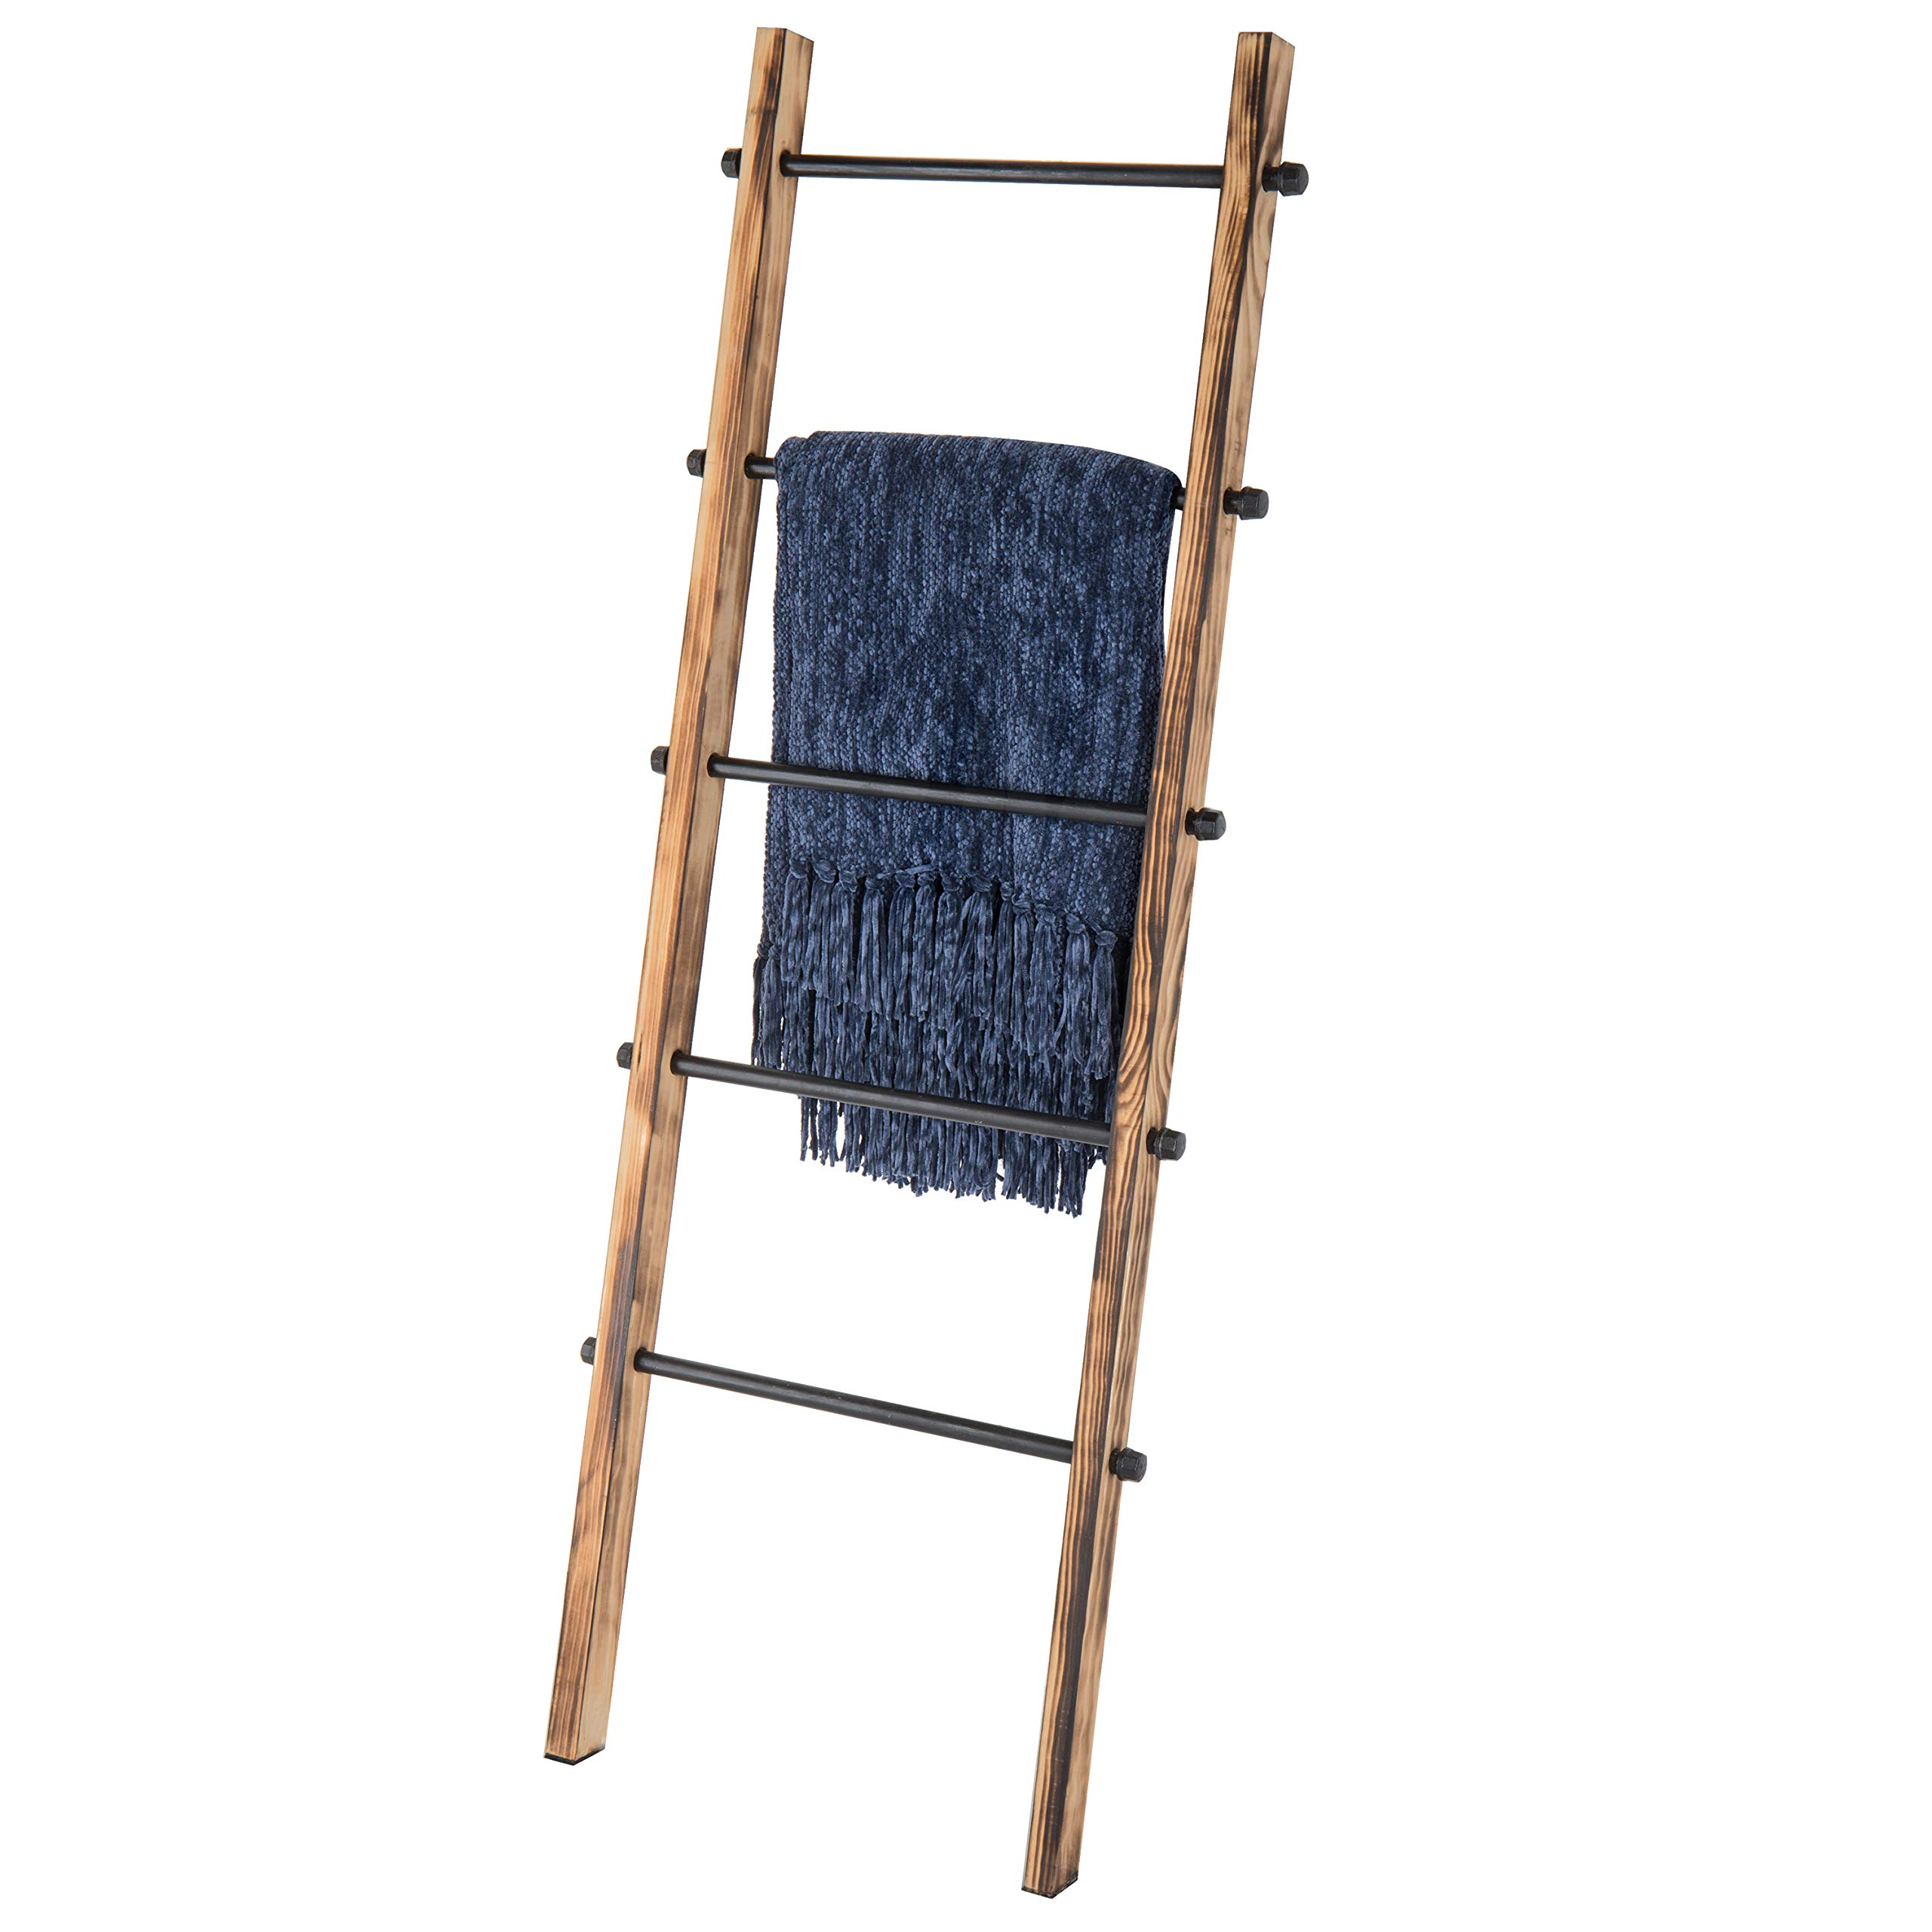 MyGift 5-ft Urban Rustic Wall-Leaning Wood & Metal Blanket Ladder